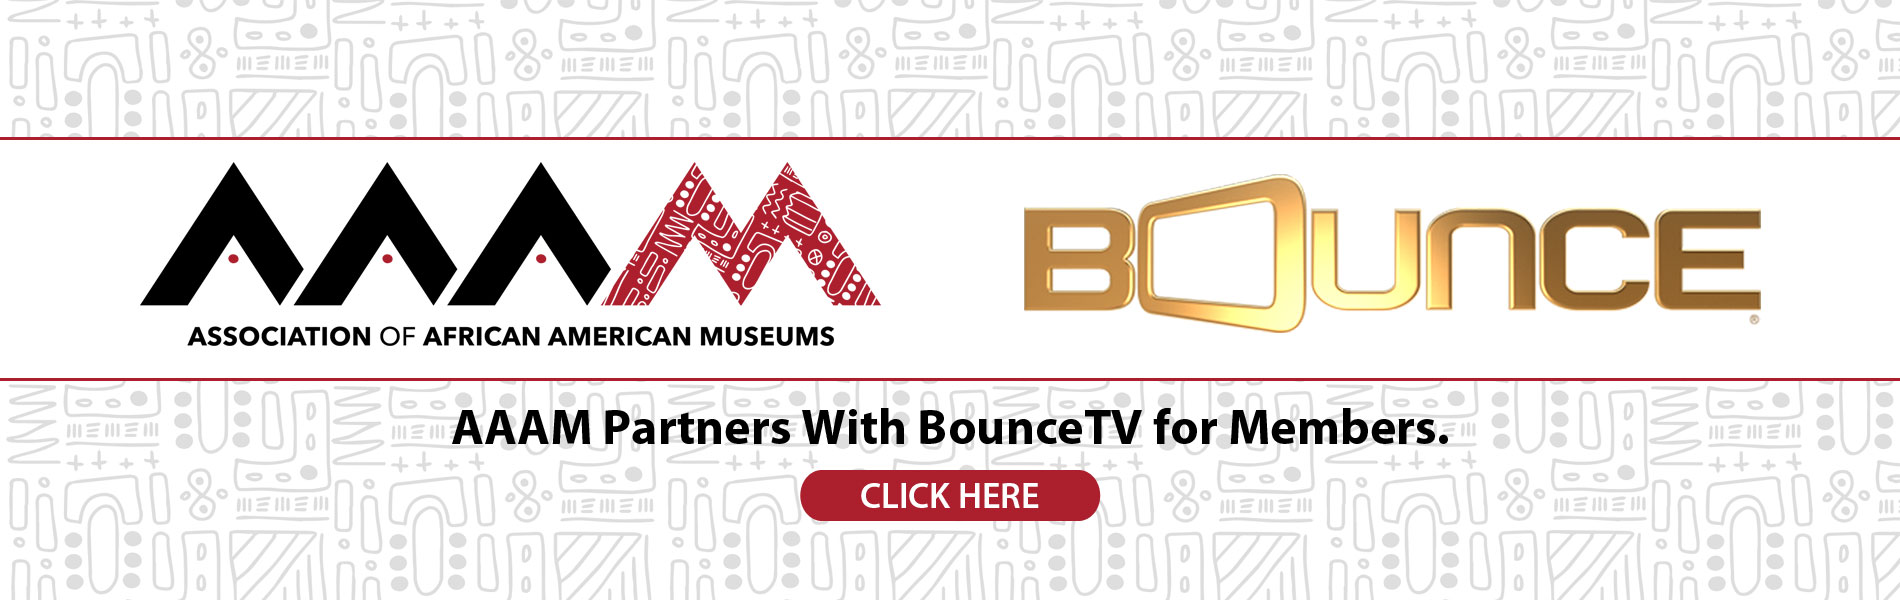 AAAM Partners With BounceTV for Members